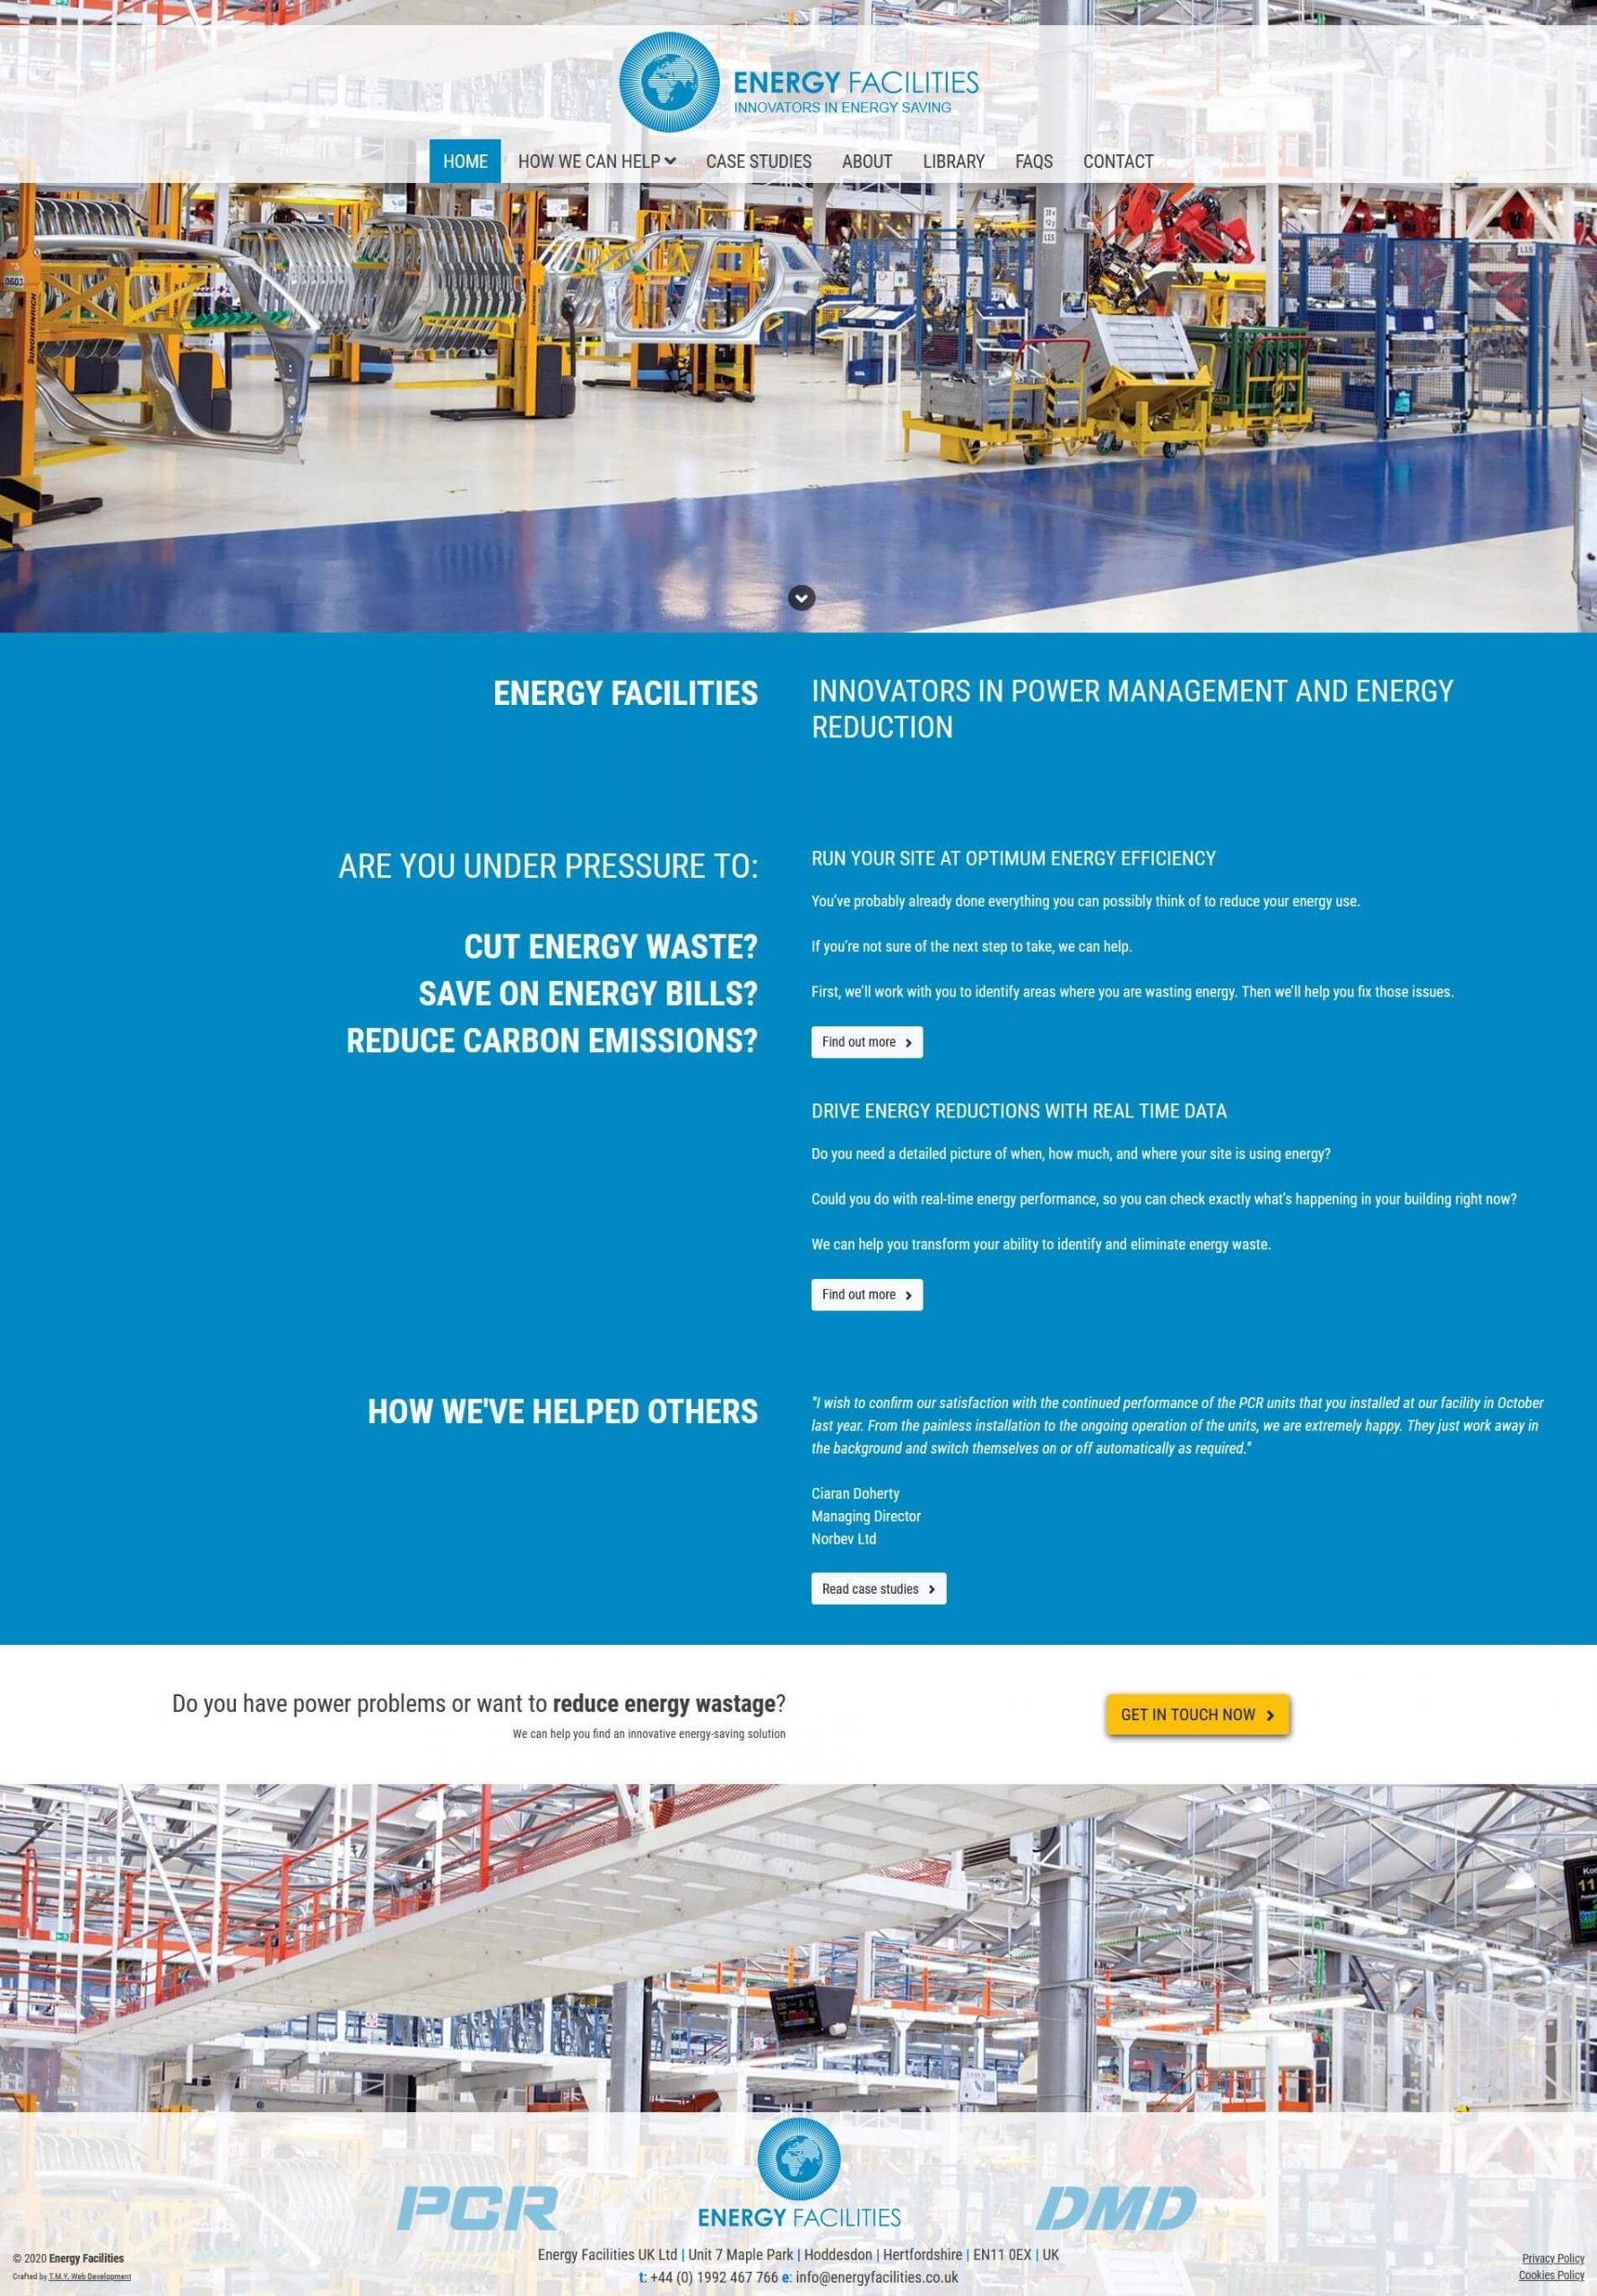 Energy Facilities - Too Mnay Years Web Development